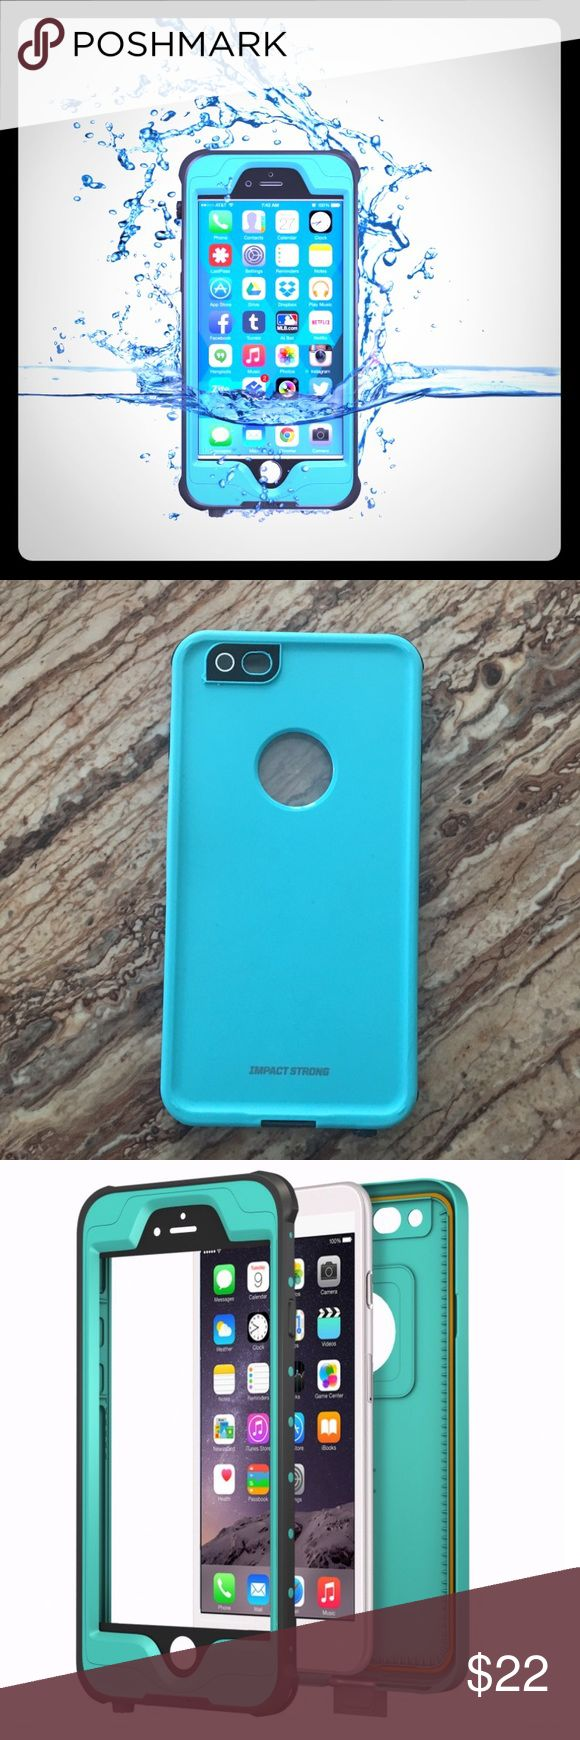 Impact Strong Waterproof iPhone 6 Plus case Fingerprint ID compatible. Waterproof so you can take photos under water or great if you work outdoors. Barely used. My daughter used for a week or two then got the iPhone 7. Very similar to the Lifeproof case. Accessories Phone Cases